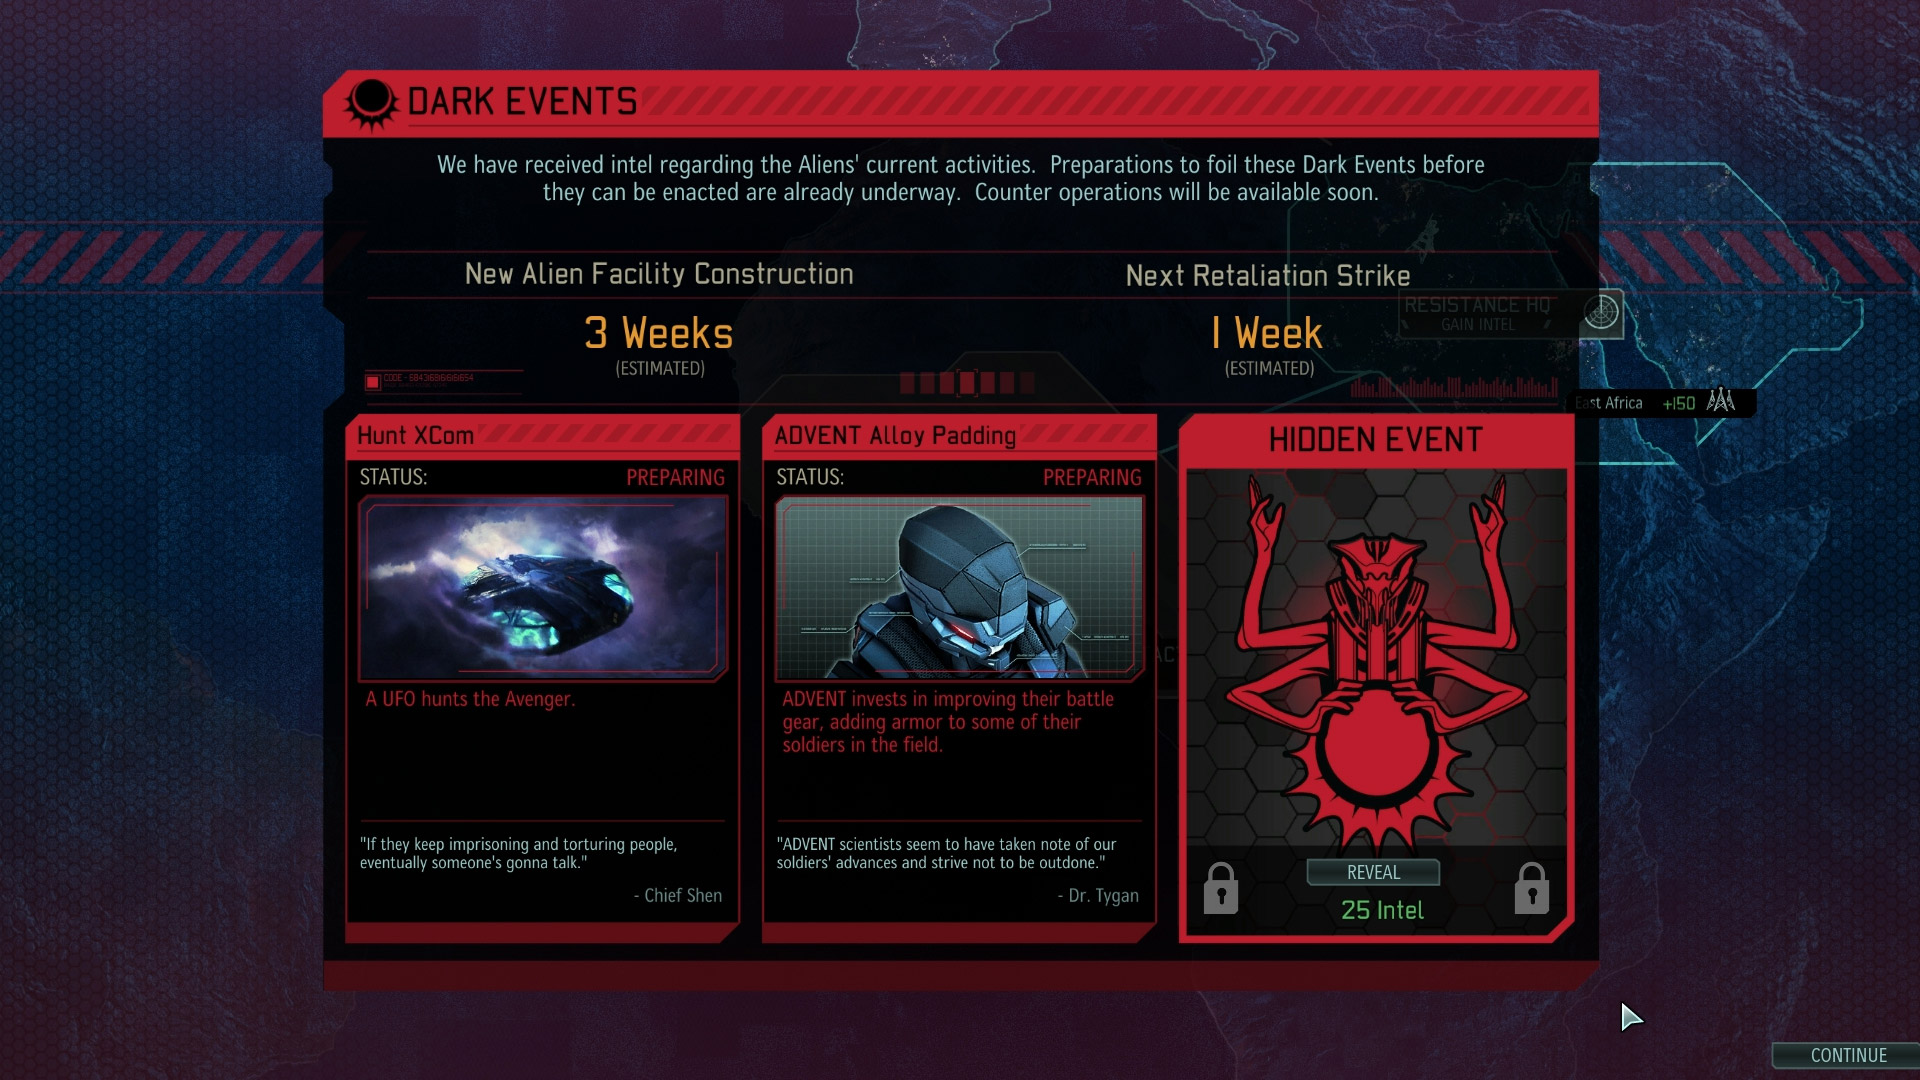 FR - Dark Events: ADVENT Counter-Operations in XCOM